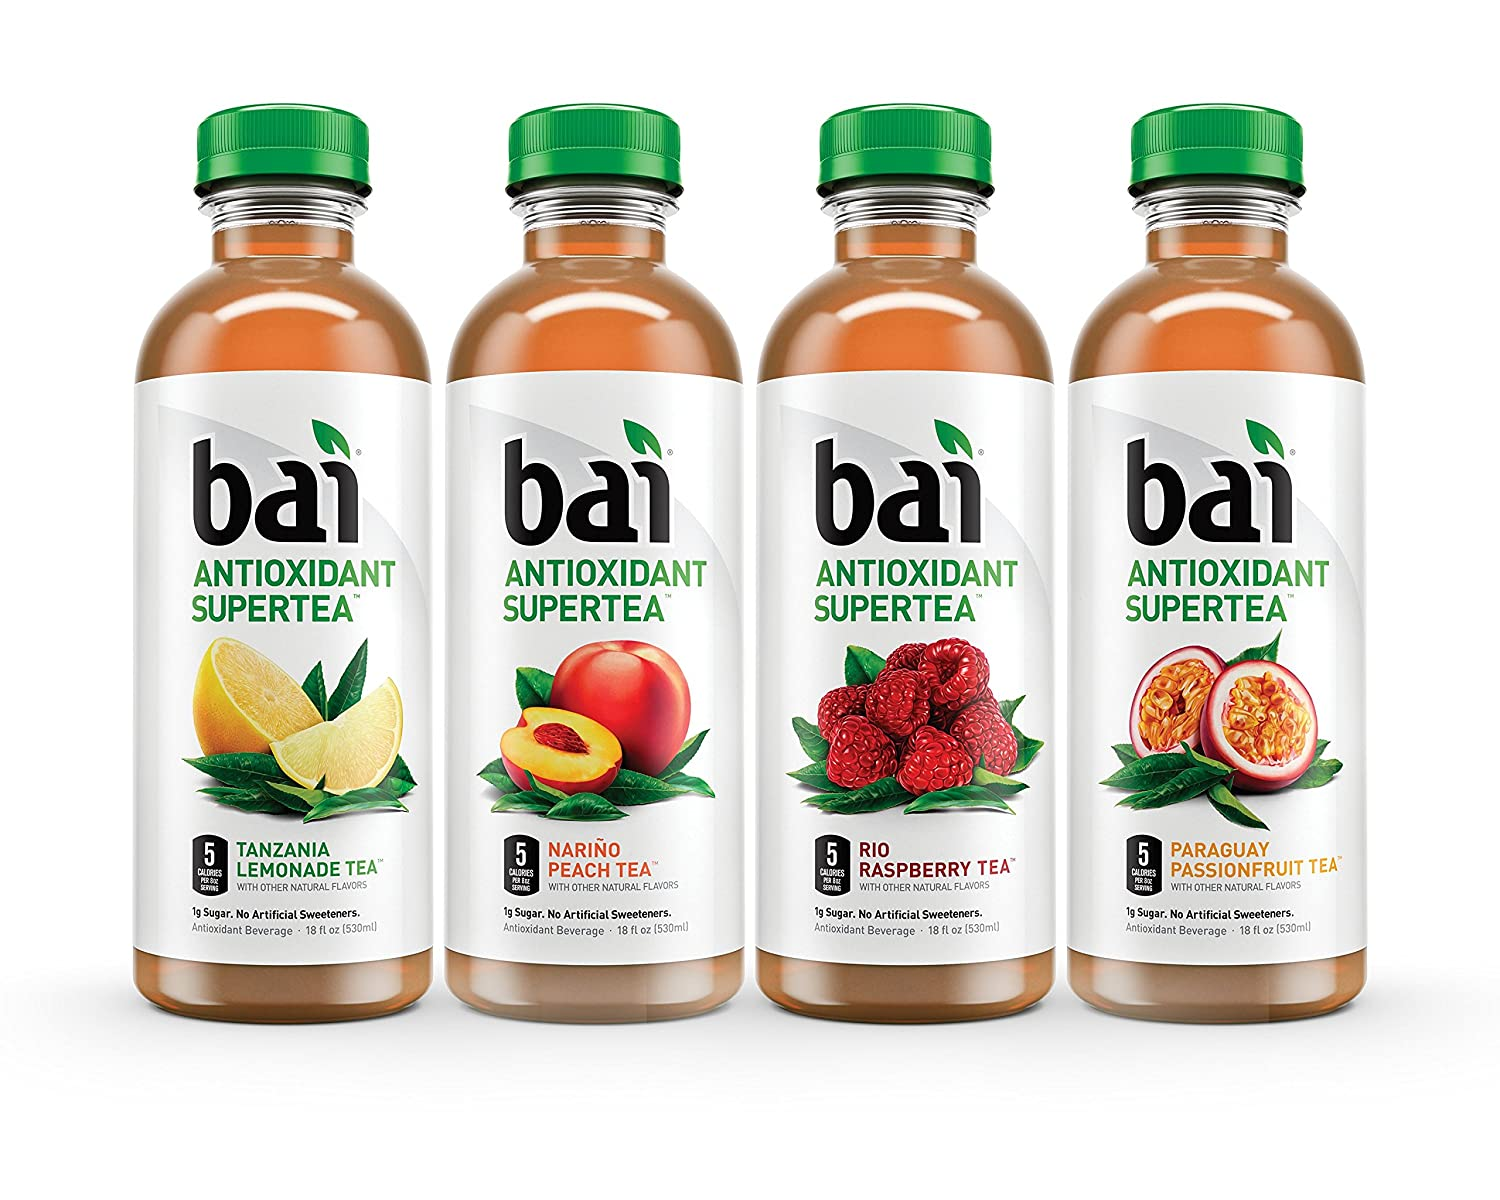 Bai Drink Review The Perfect Way To Quench Your Thirst